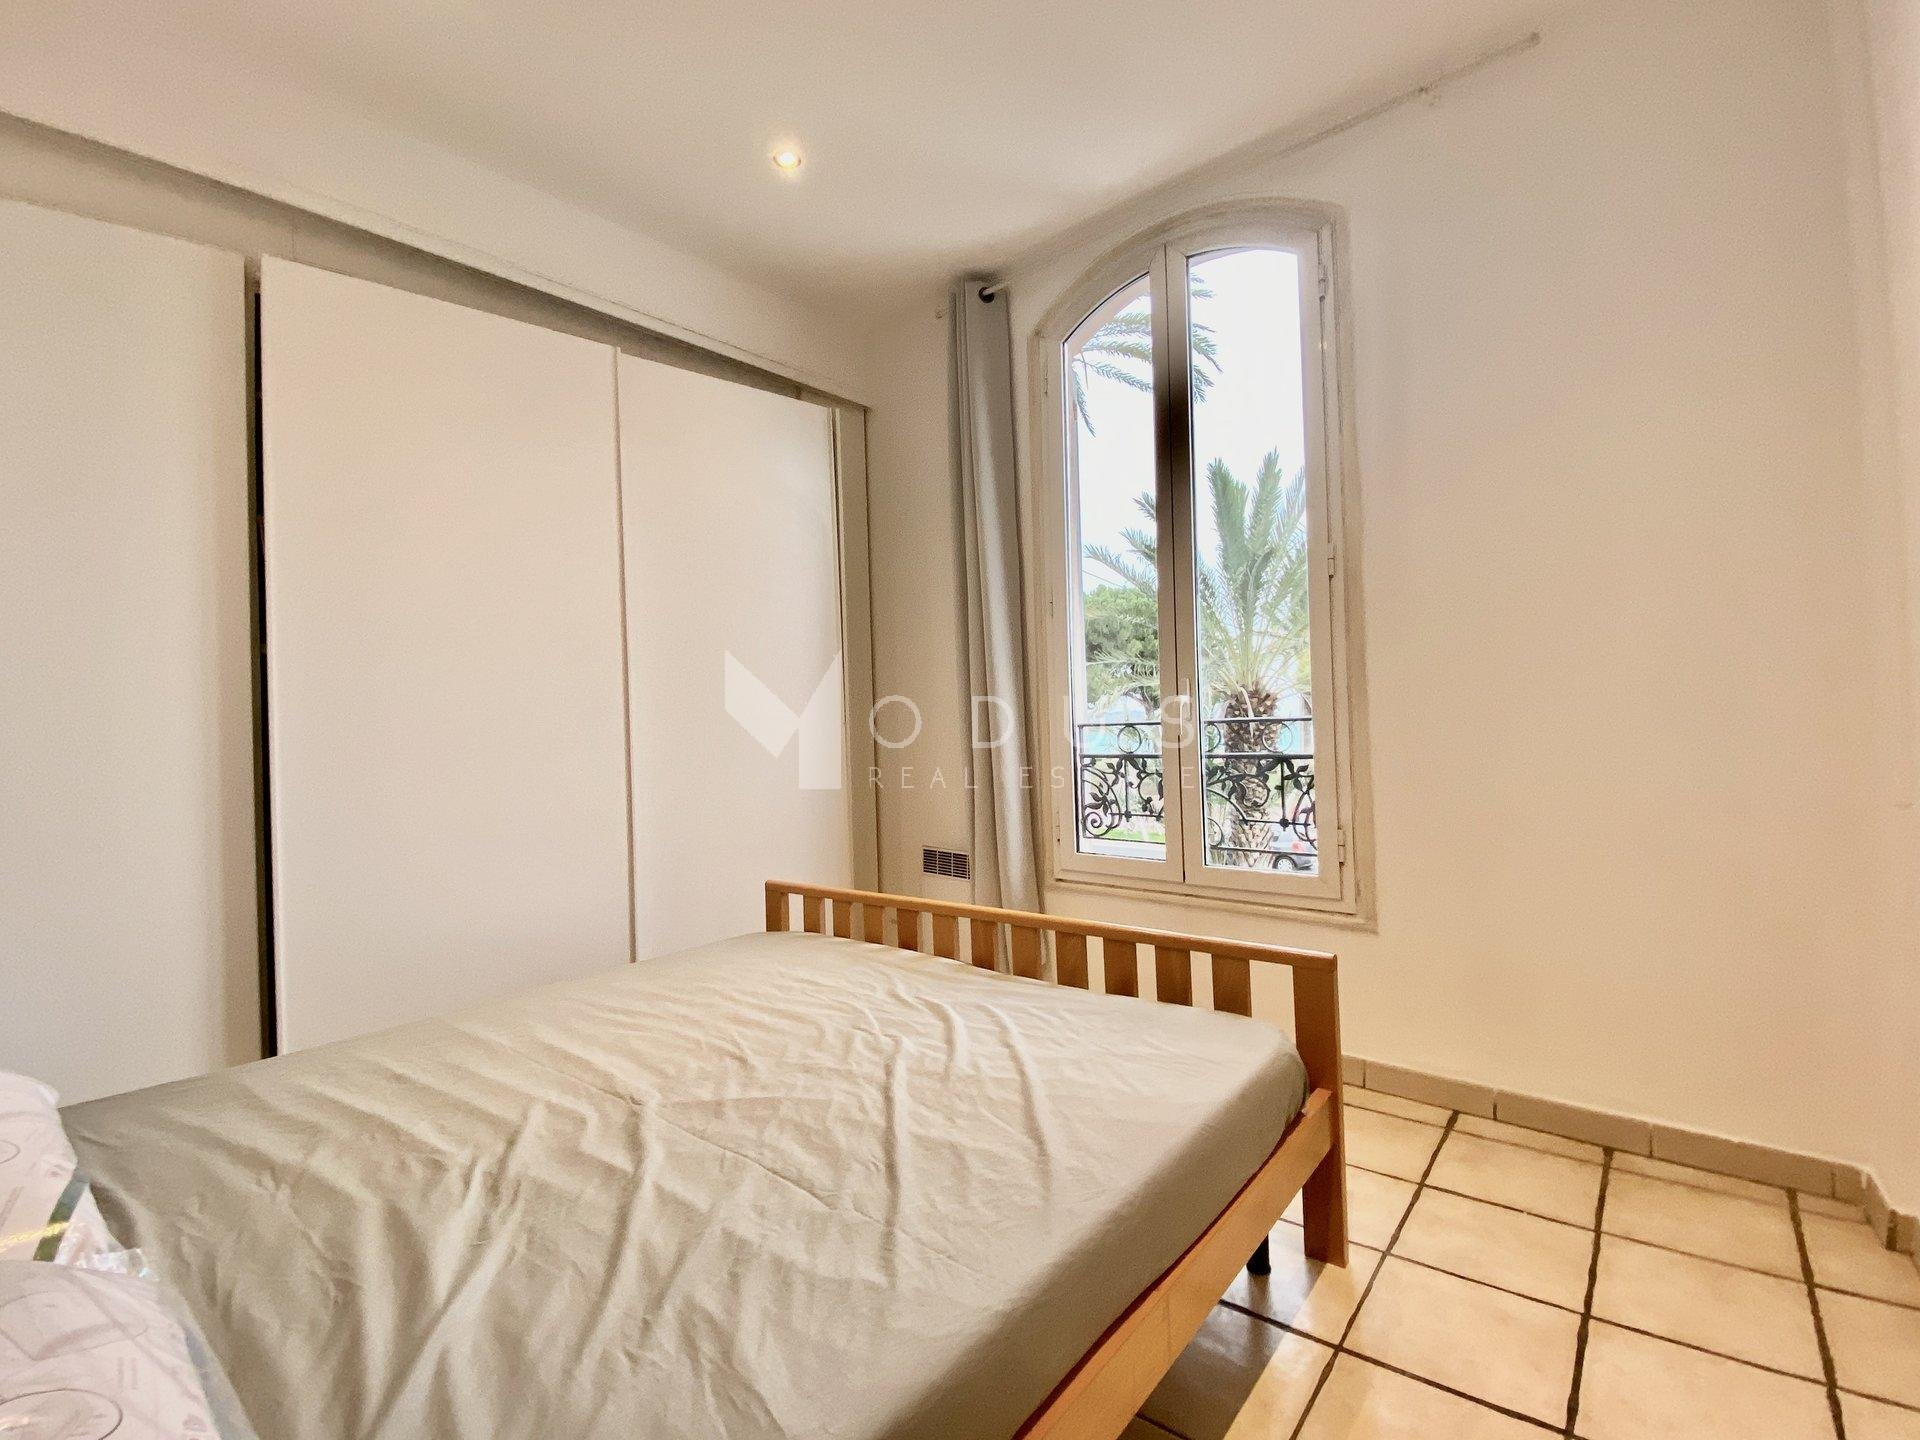 2/3 one bedroom flat with sea view.